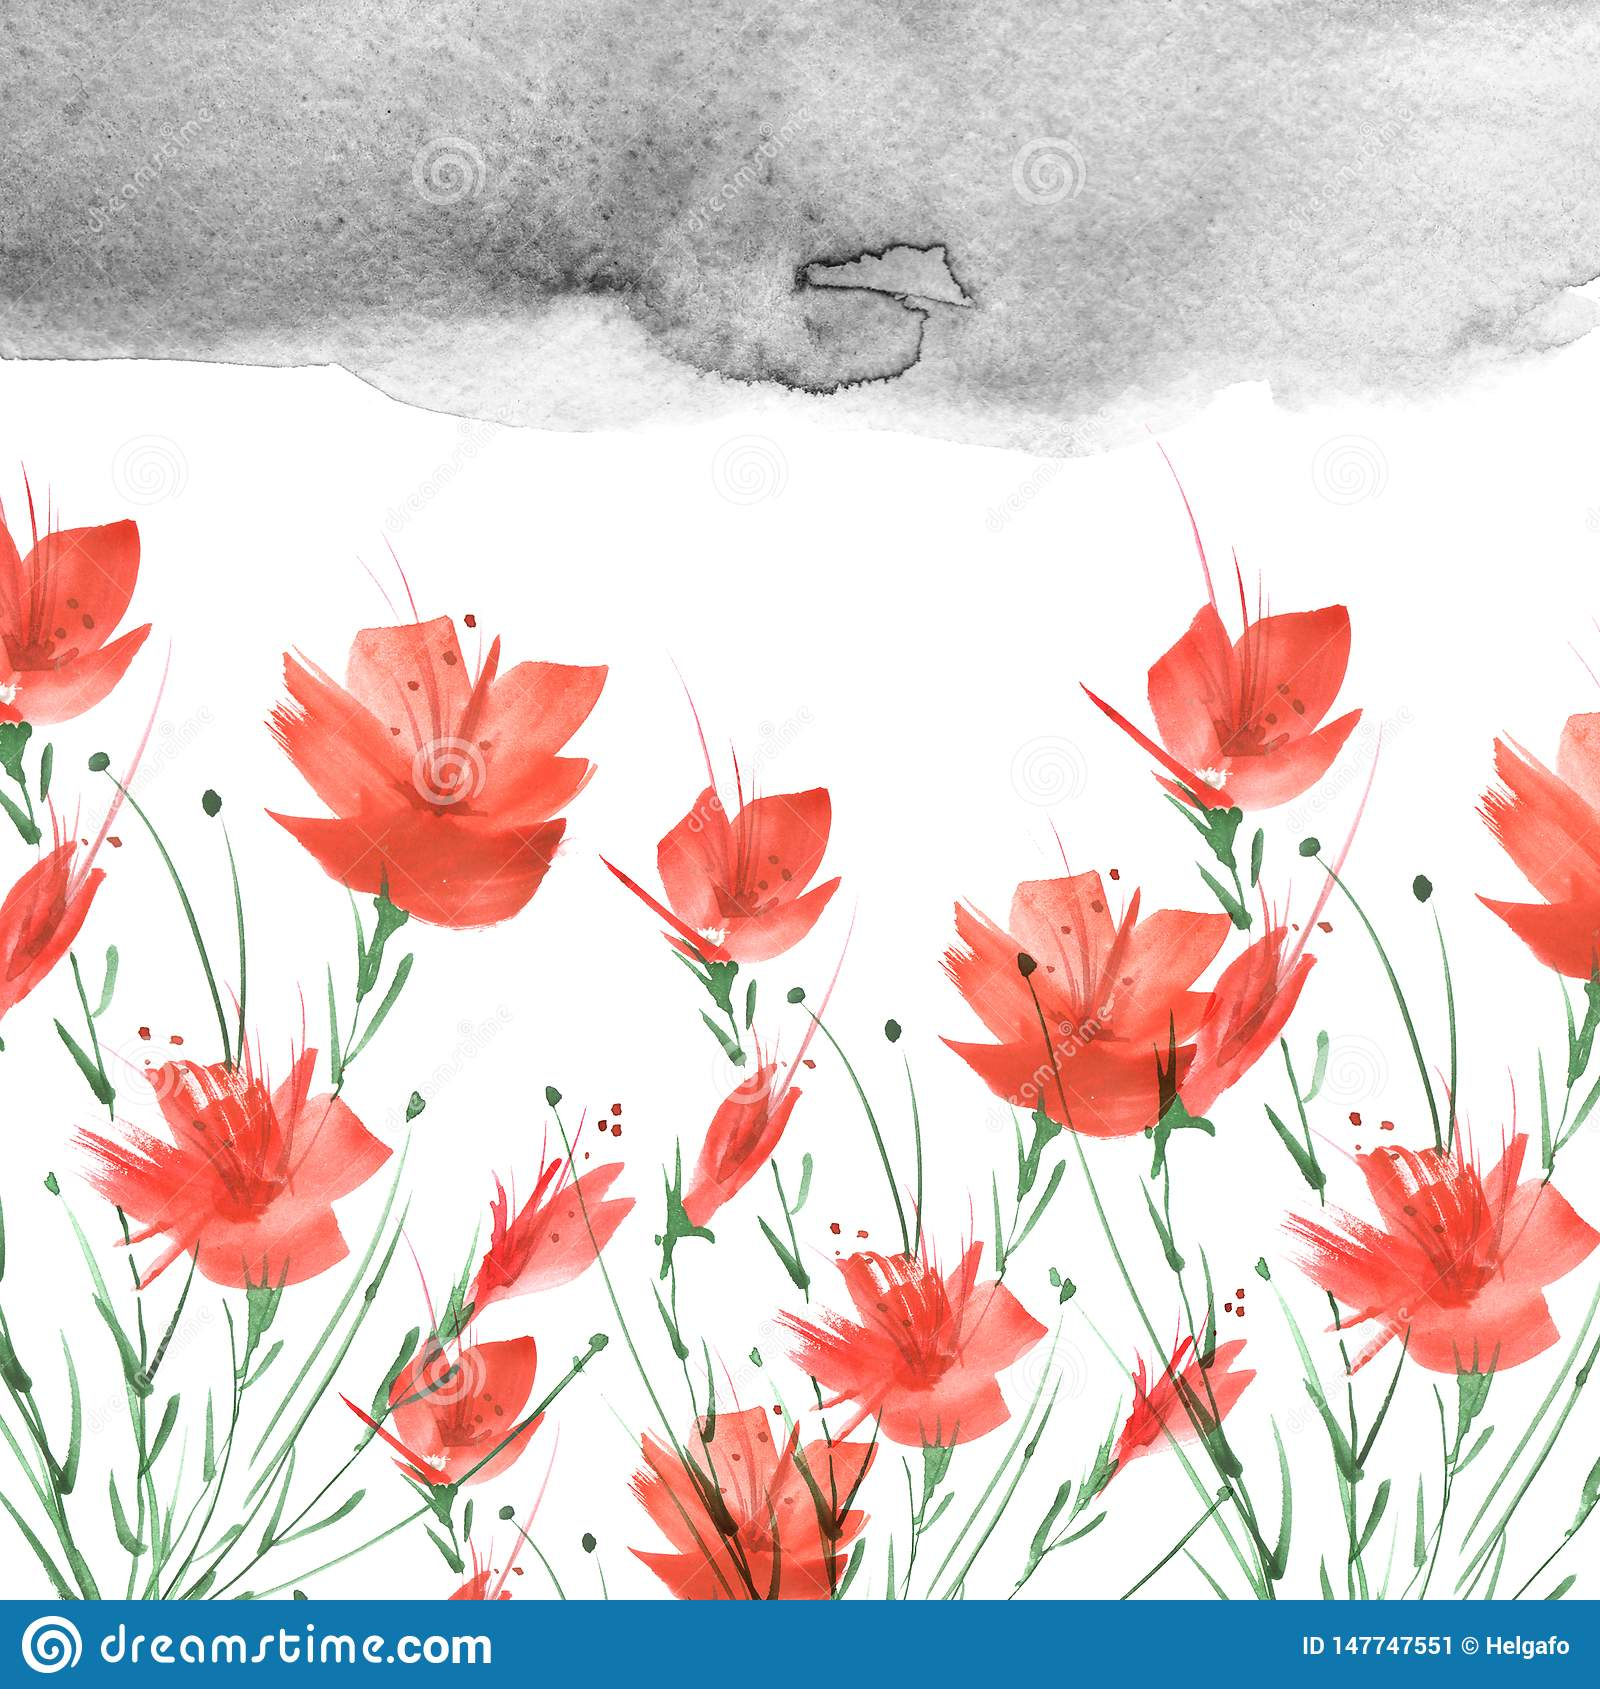 Watercolor vintage picture, border of a botanical pattern, red poppy, rose, lily, wild flowers, grass, plants, leaves.